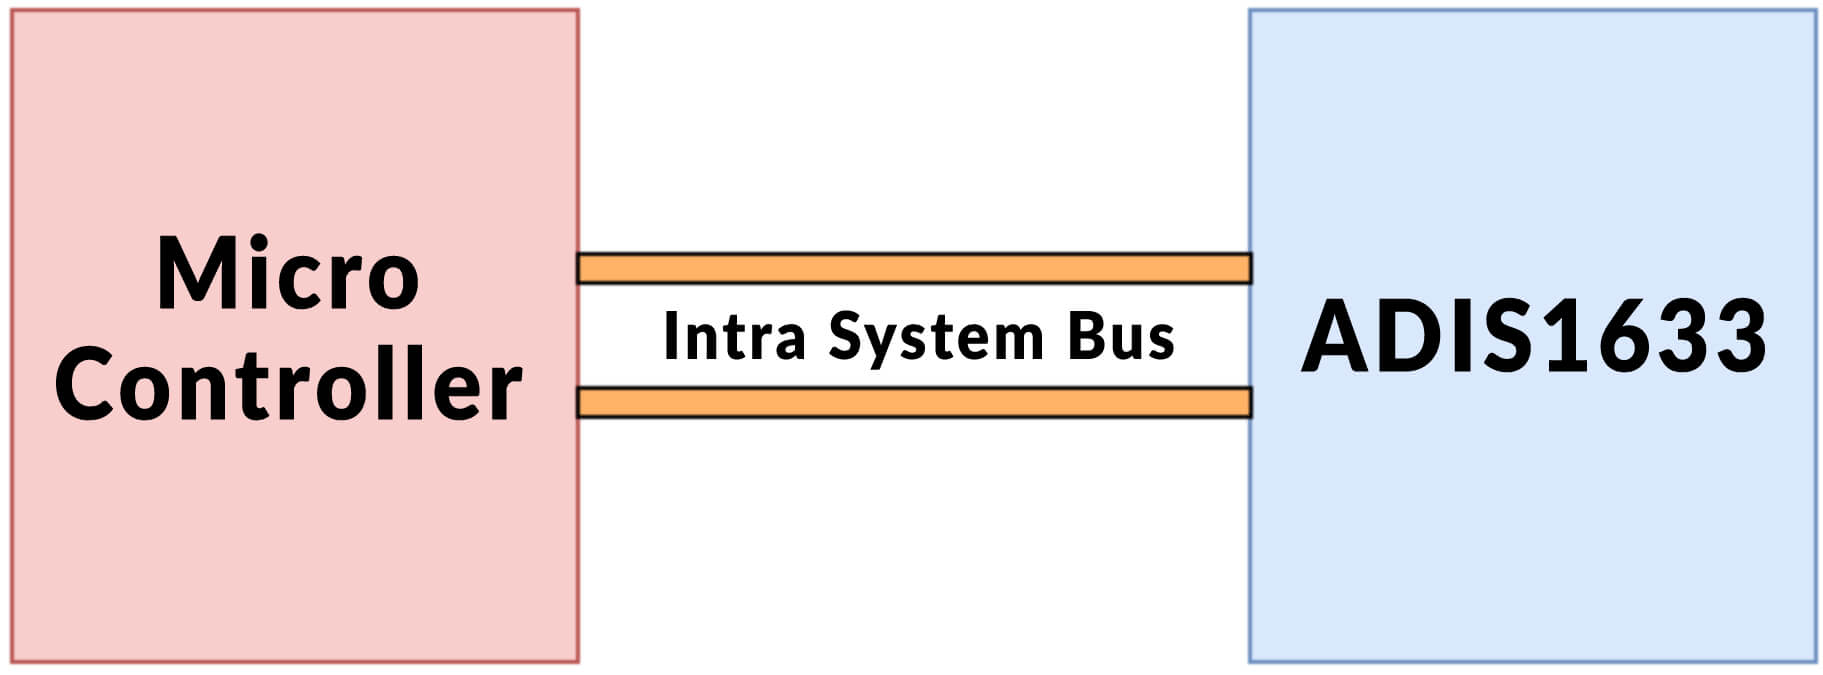 Intra System Protocol and its Representation